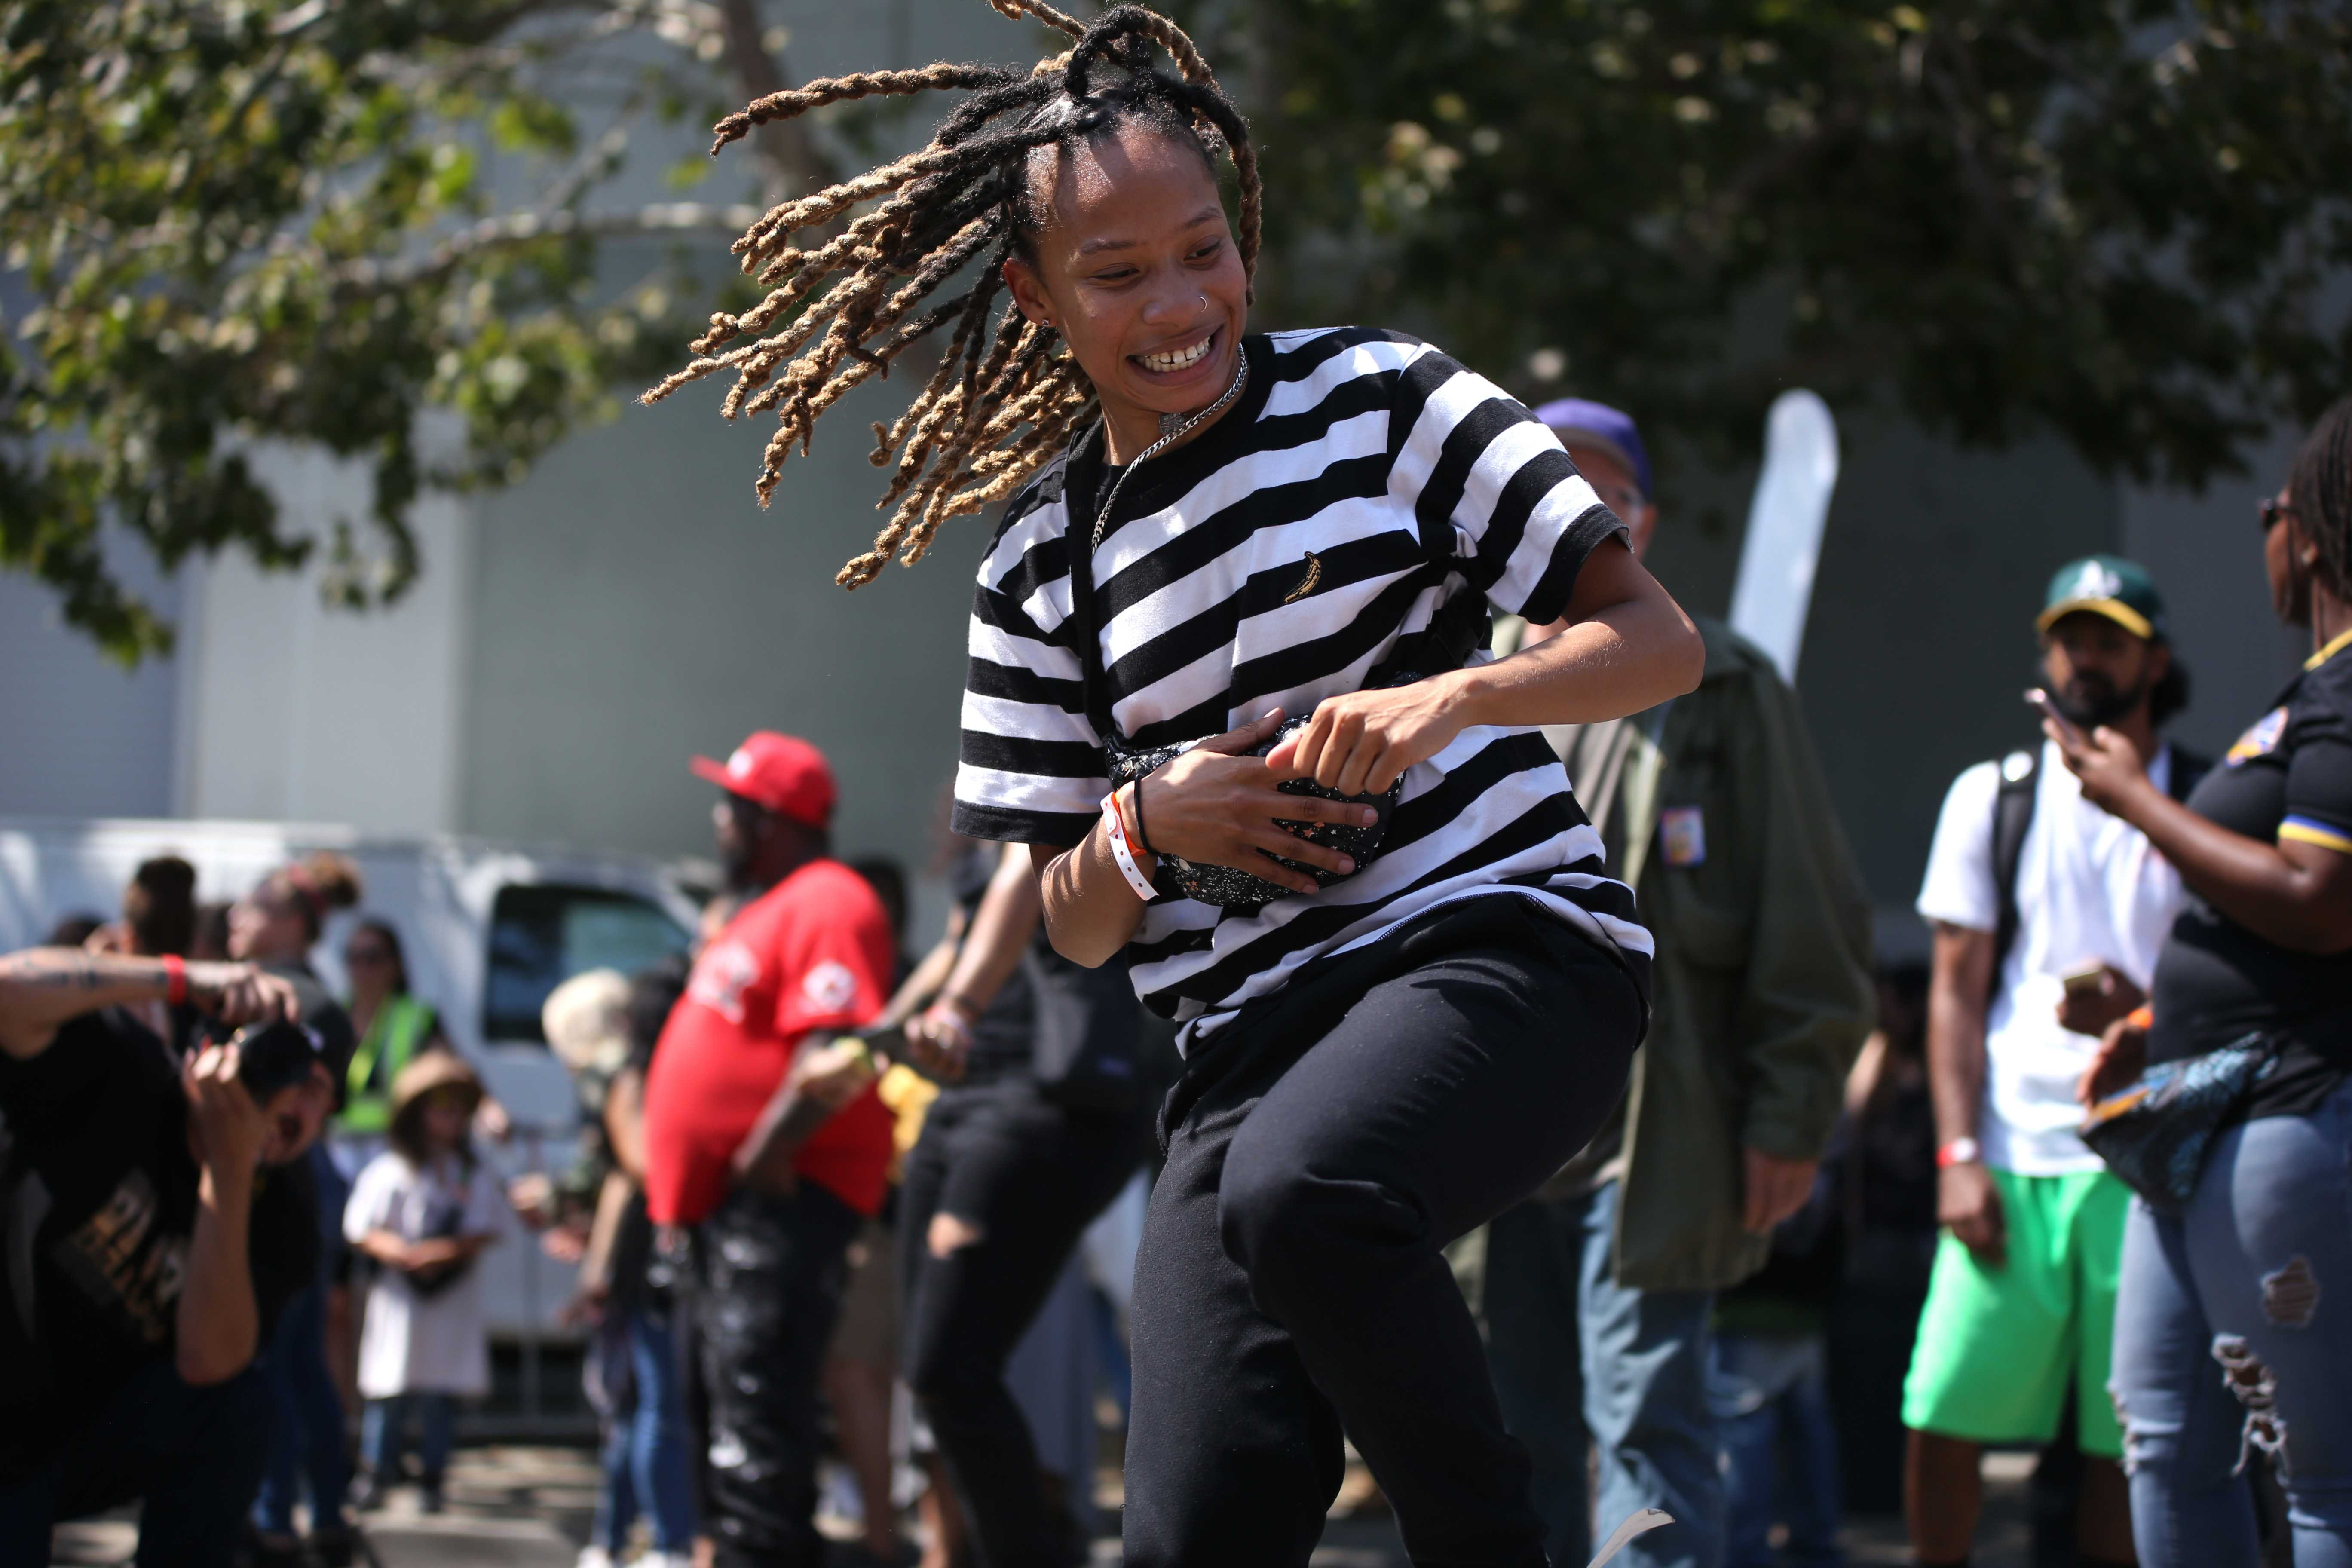 Hiero Day honors the hip-hop community